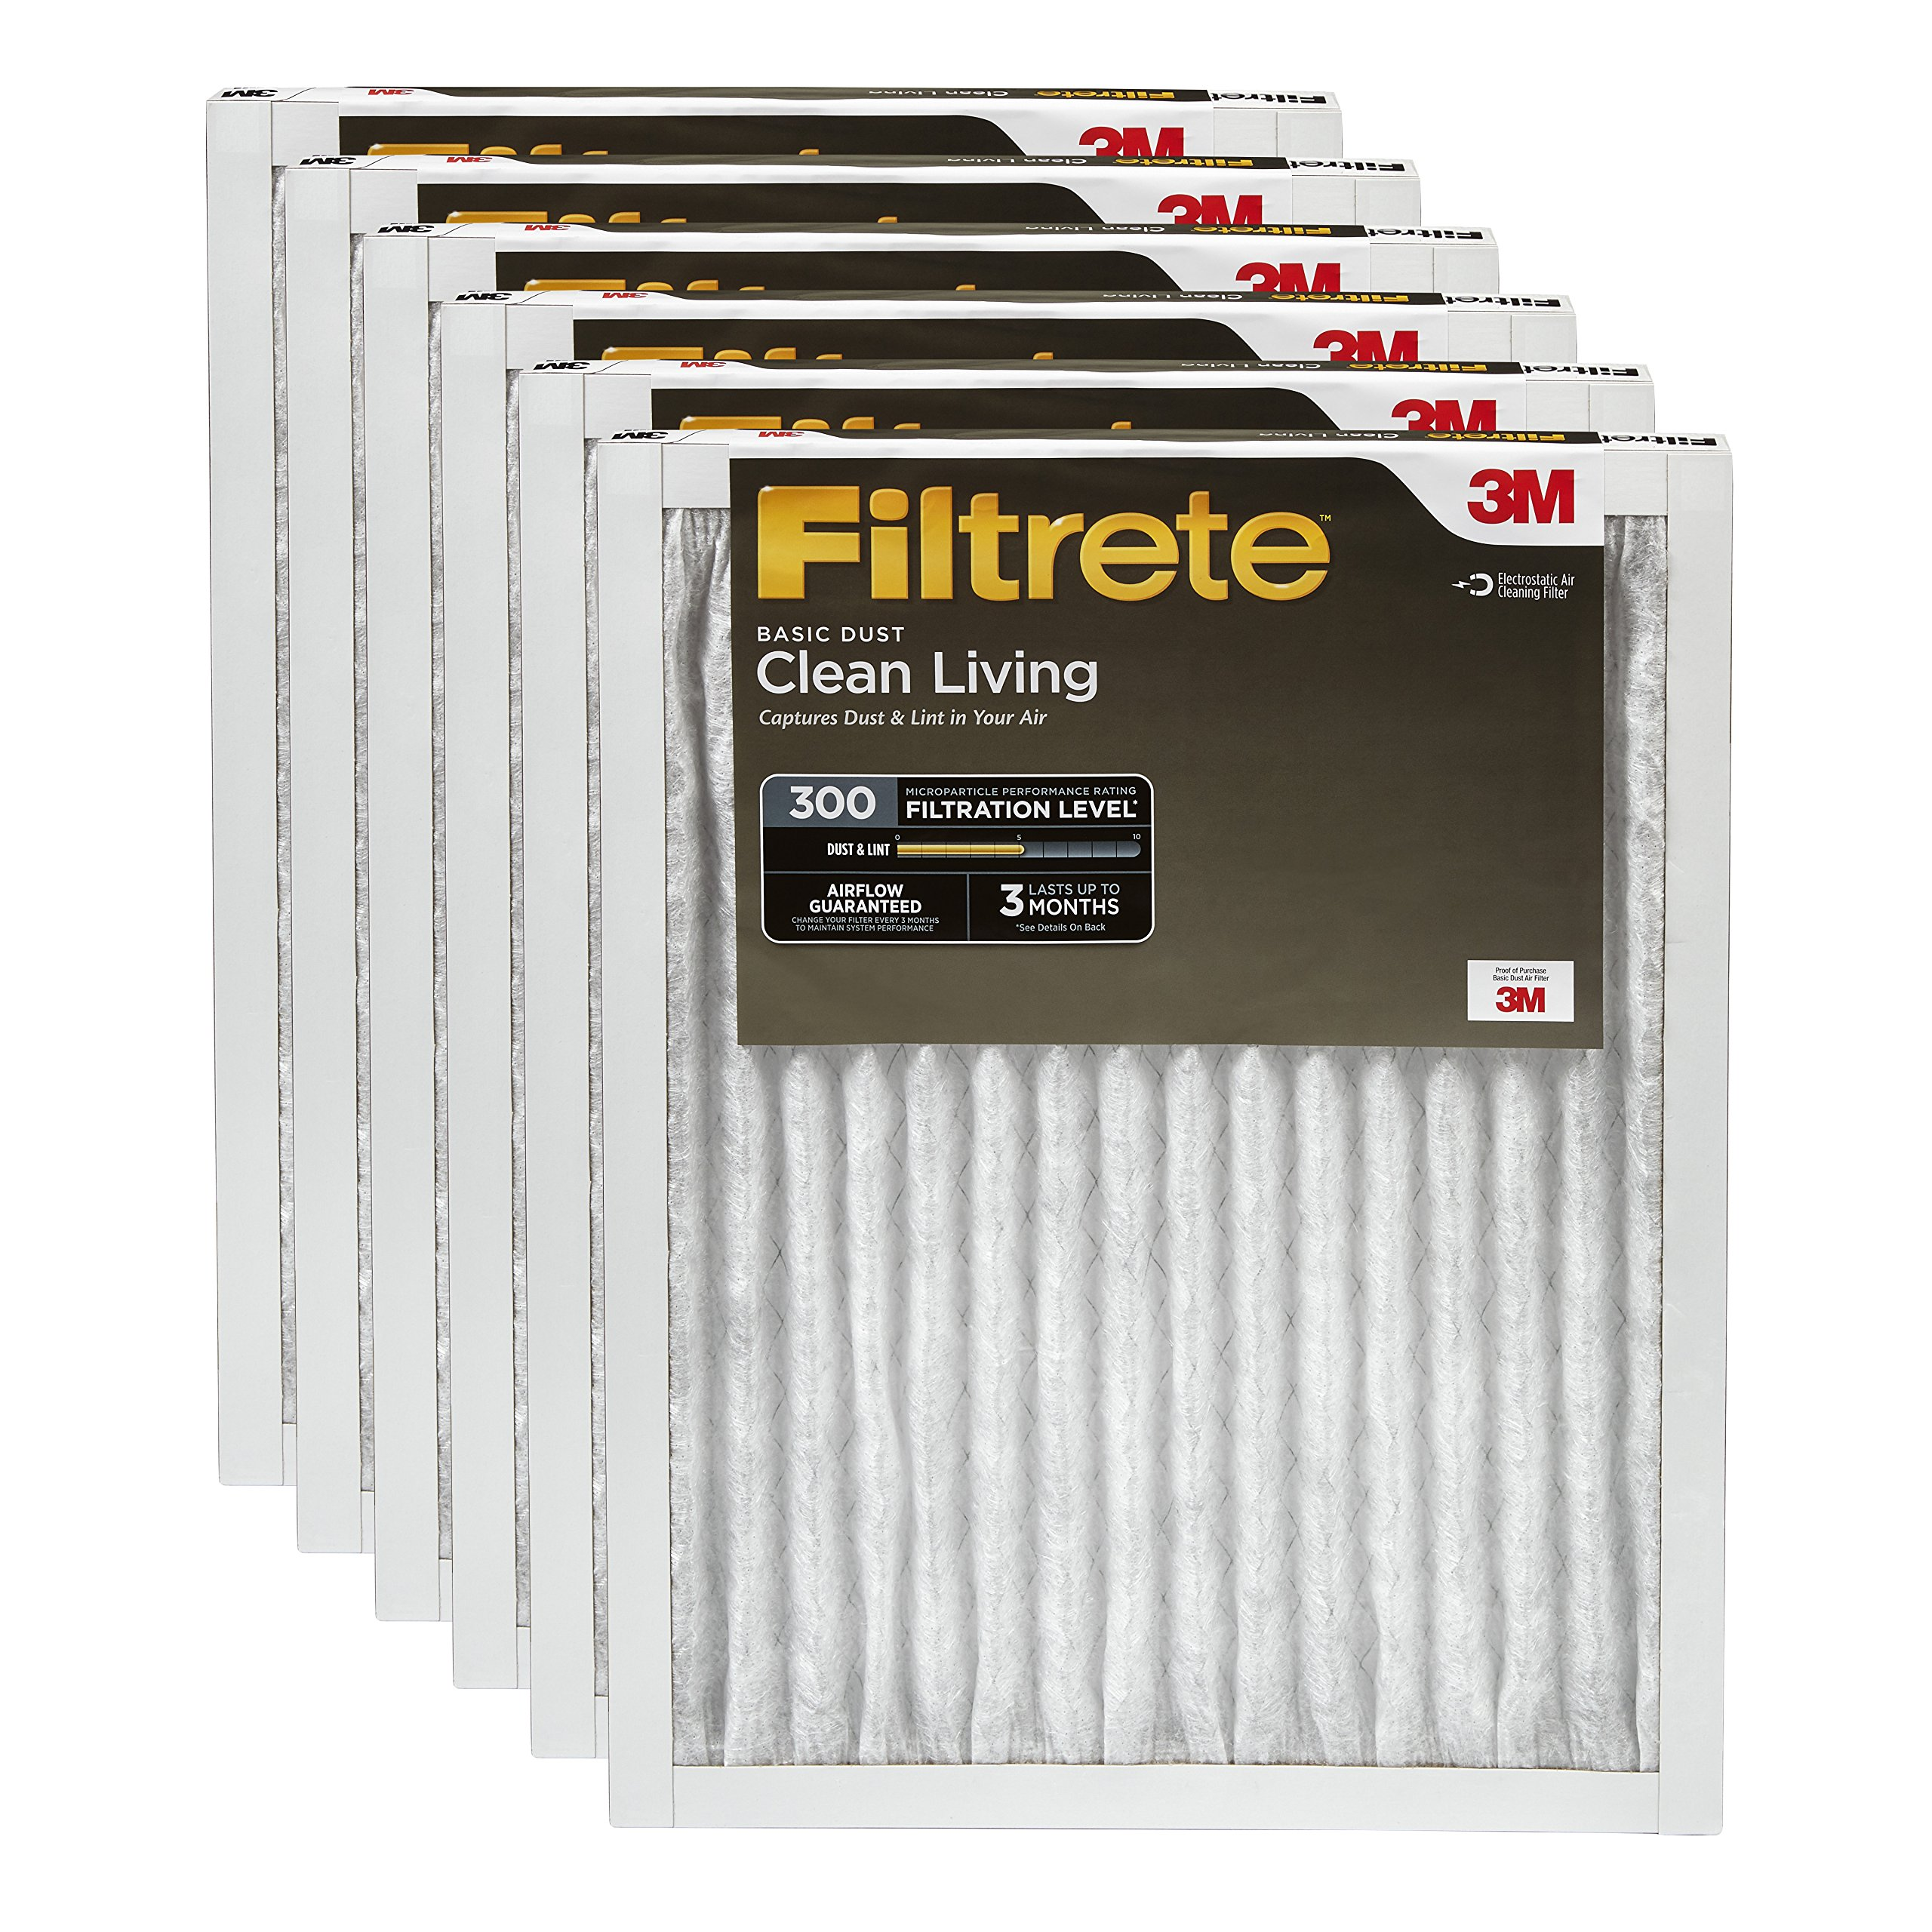 Filtrete Clean Living Basic Dust AC Furnace Air Filter, MPR 300, 12 x 24 x 1-Inches, 6-Pack